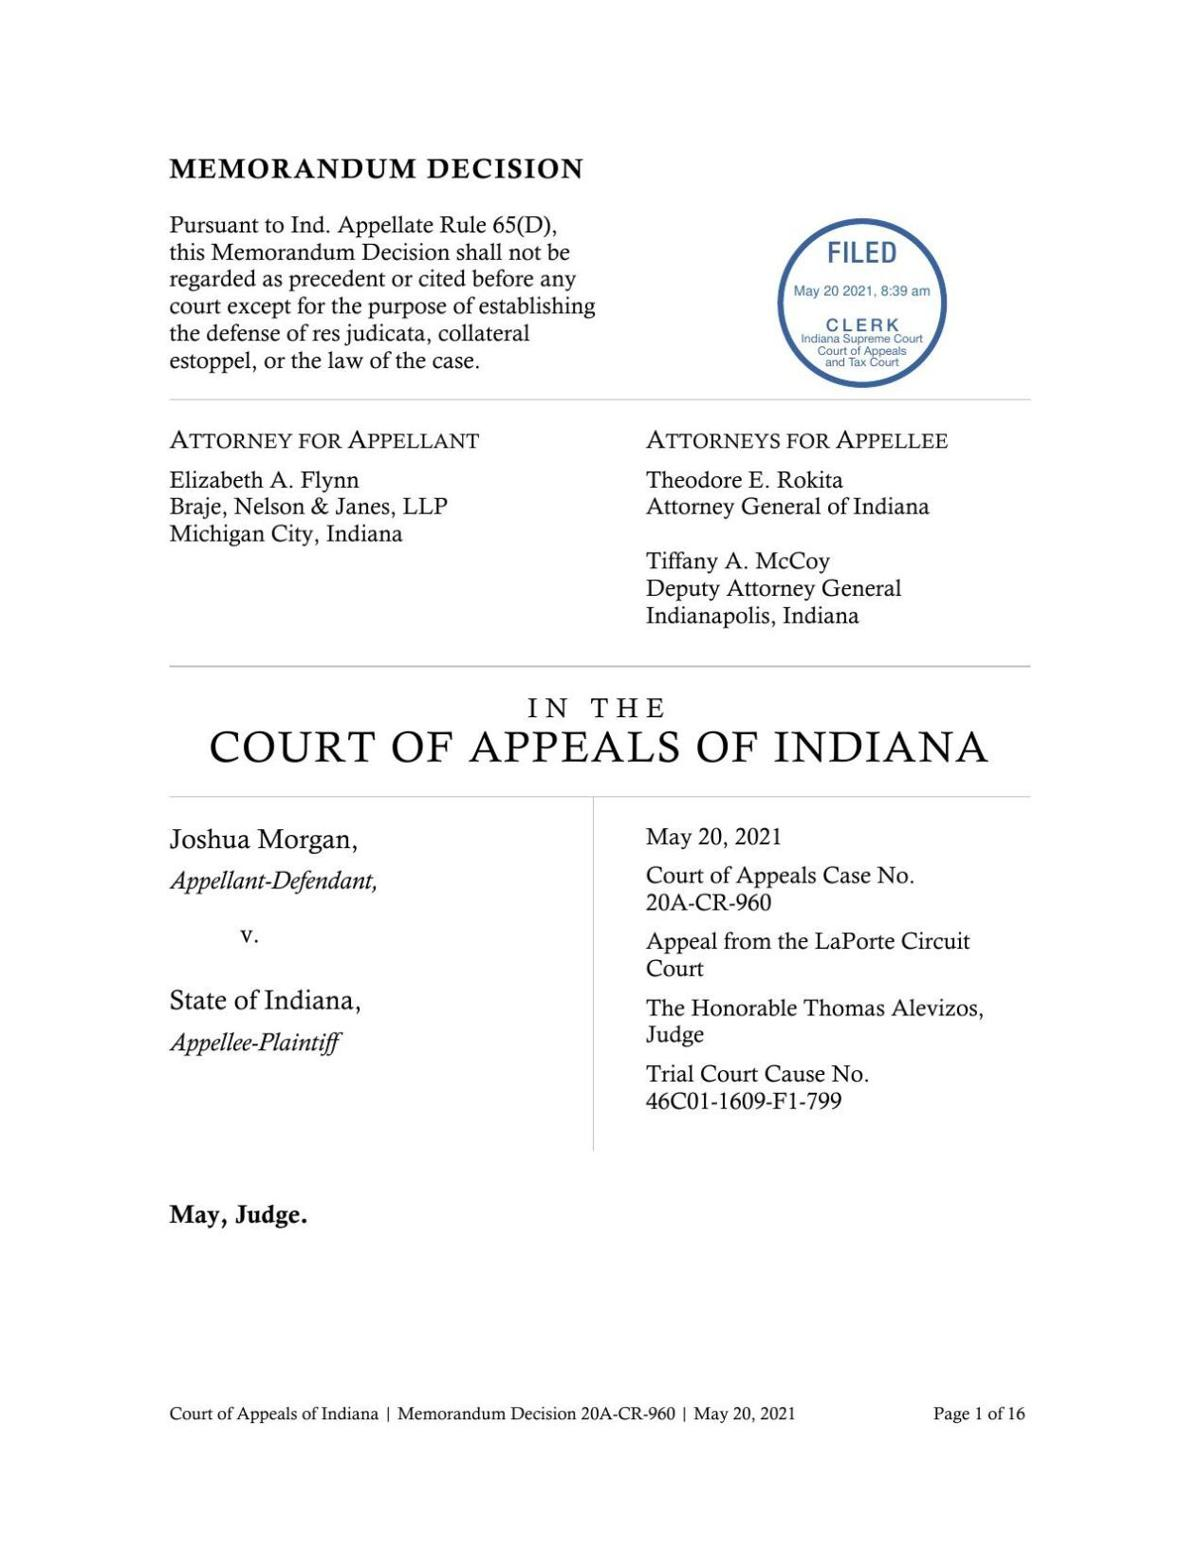 Morgan v. State ruling of Indiana Court of Appeals